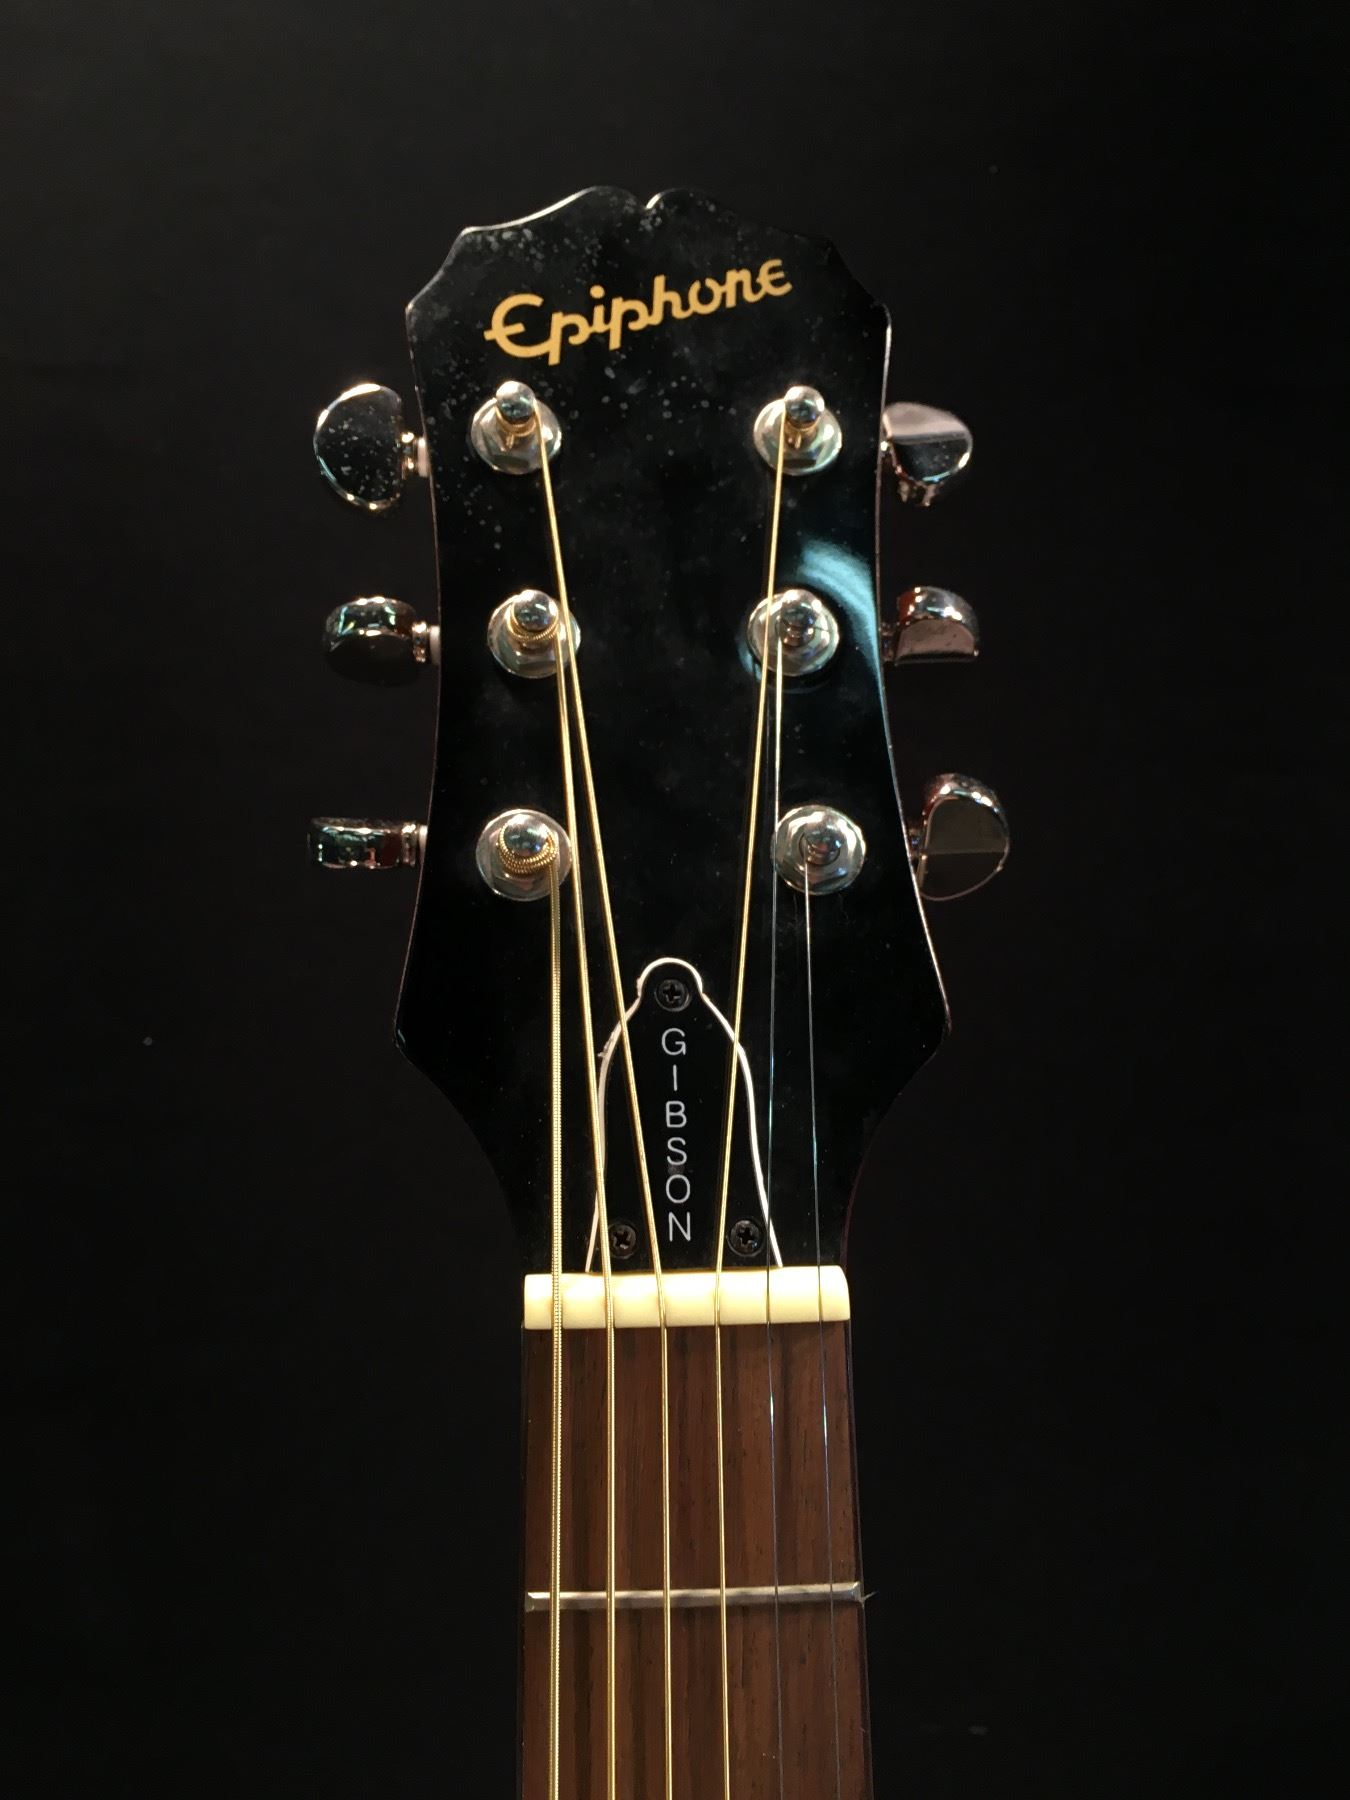 Dating epiphone guitars by serial number